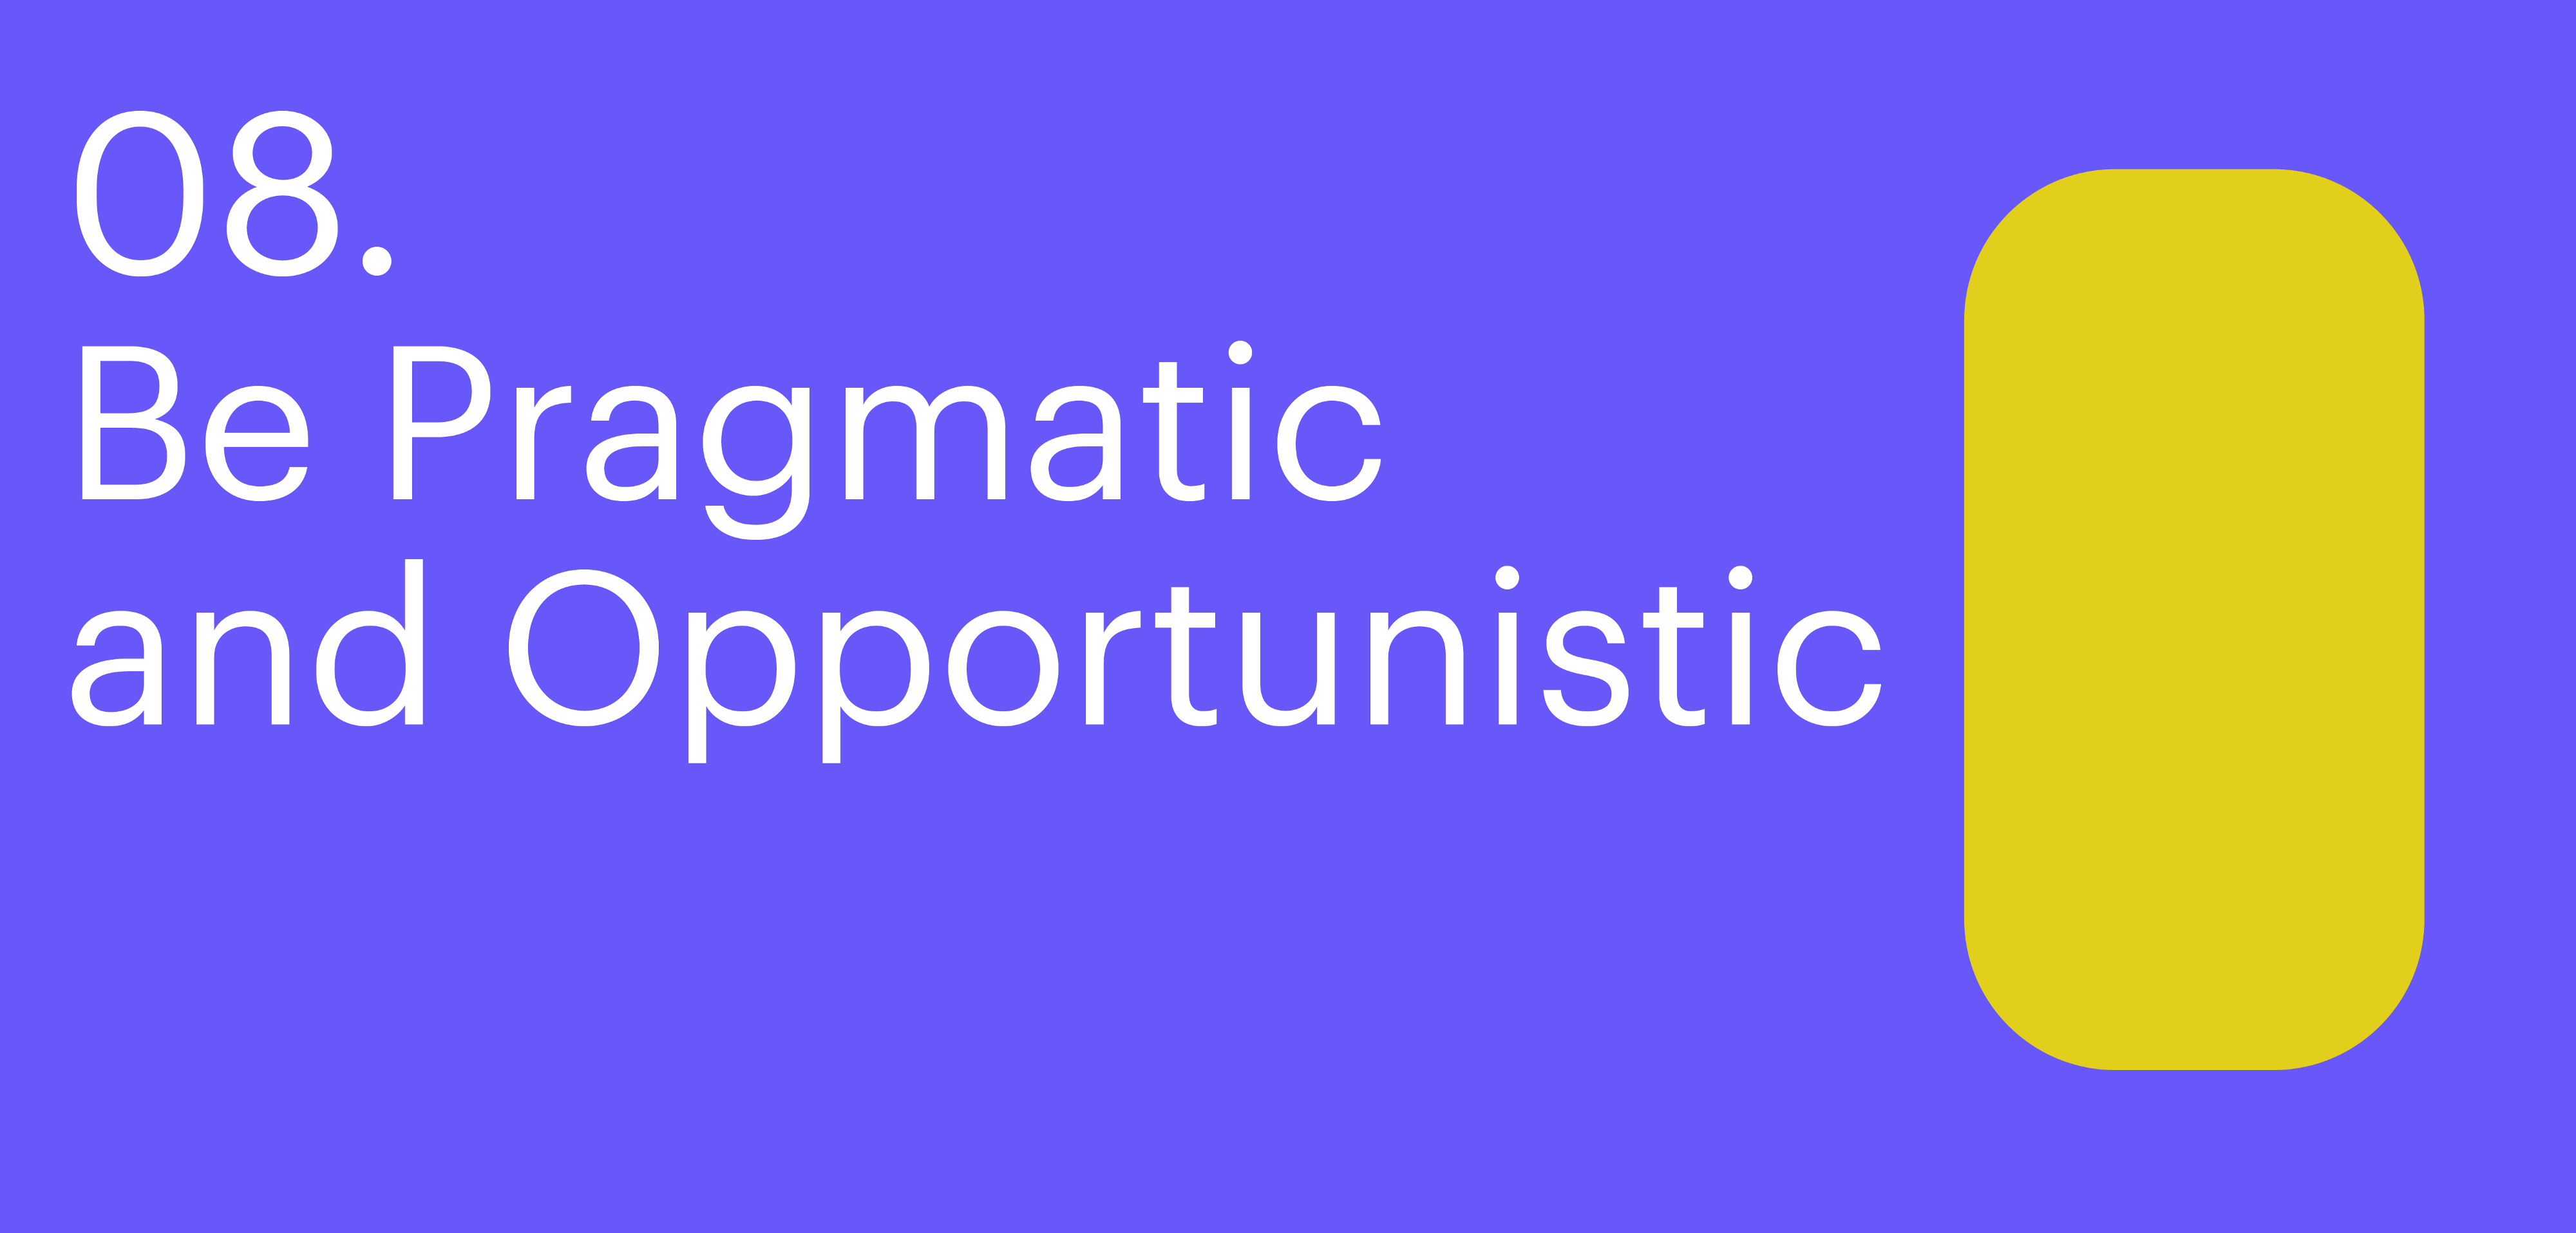 Principle eight. Be Pragmatic and Opportunistic